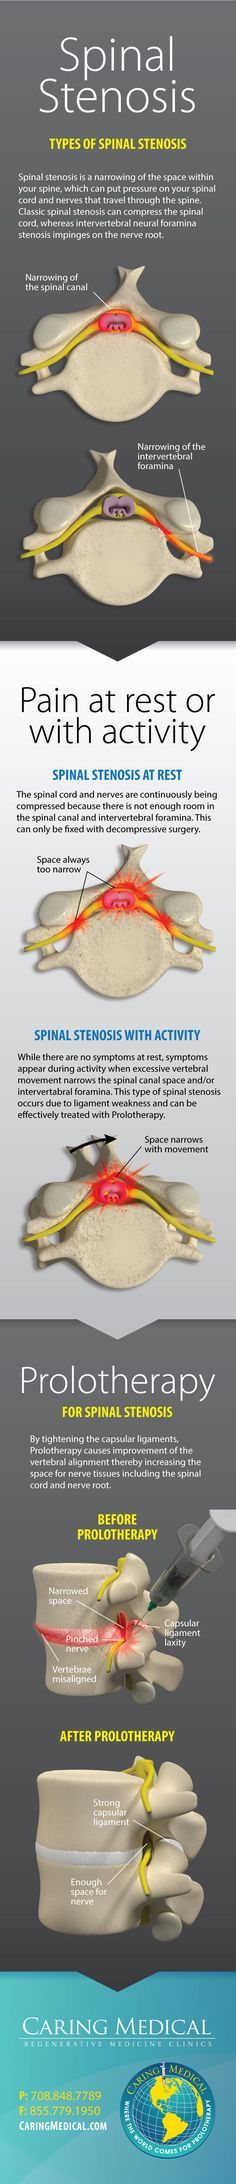 Prolotherapy for Spinal Stenosis, by tightening the capsular ligaments, Prolotherapy causes improvement of the vertebral alignment thereby increasing the space for nerve tissues including the spinal cord and nerve root.